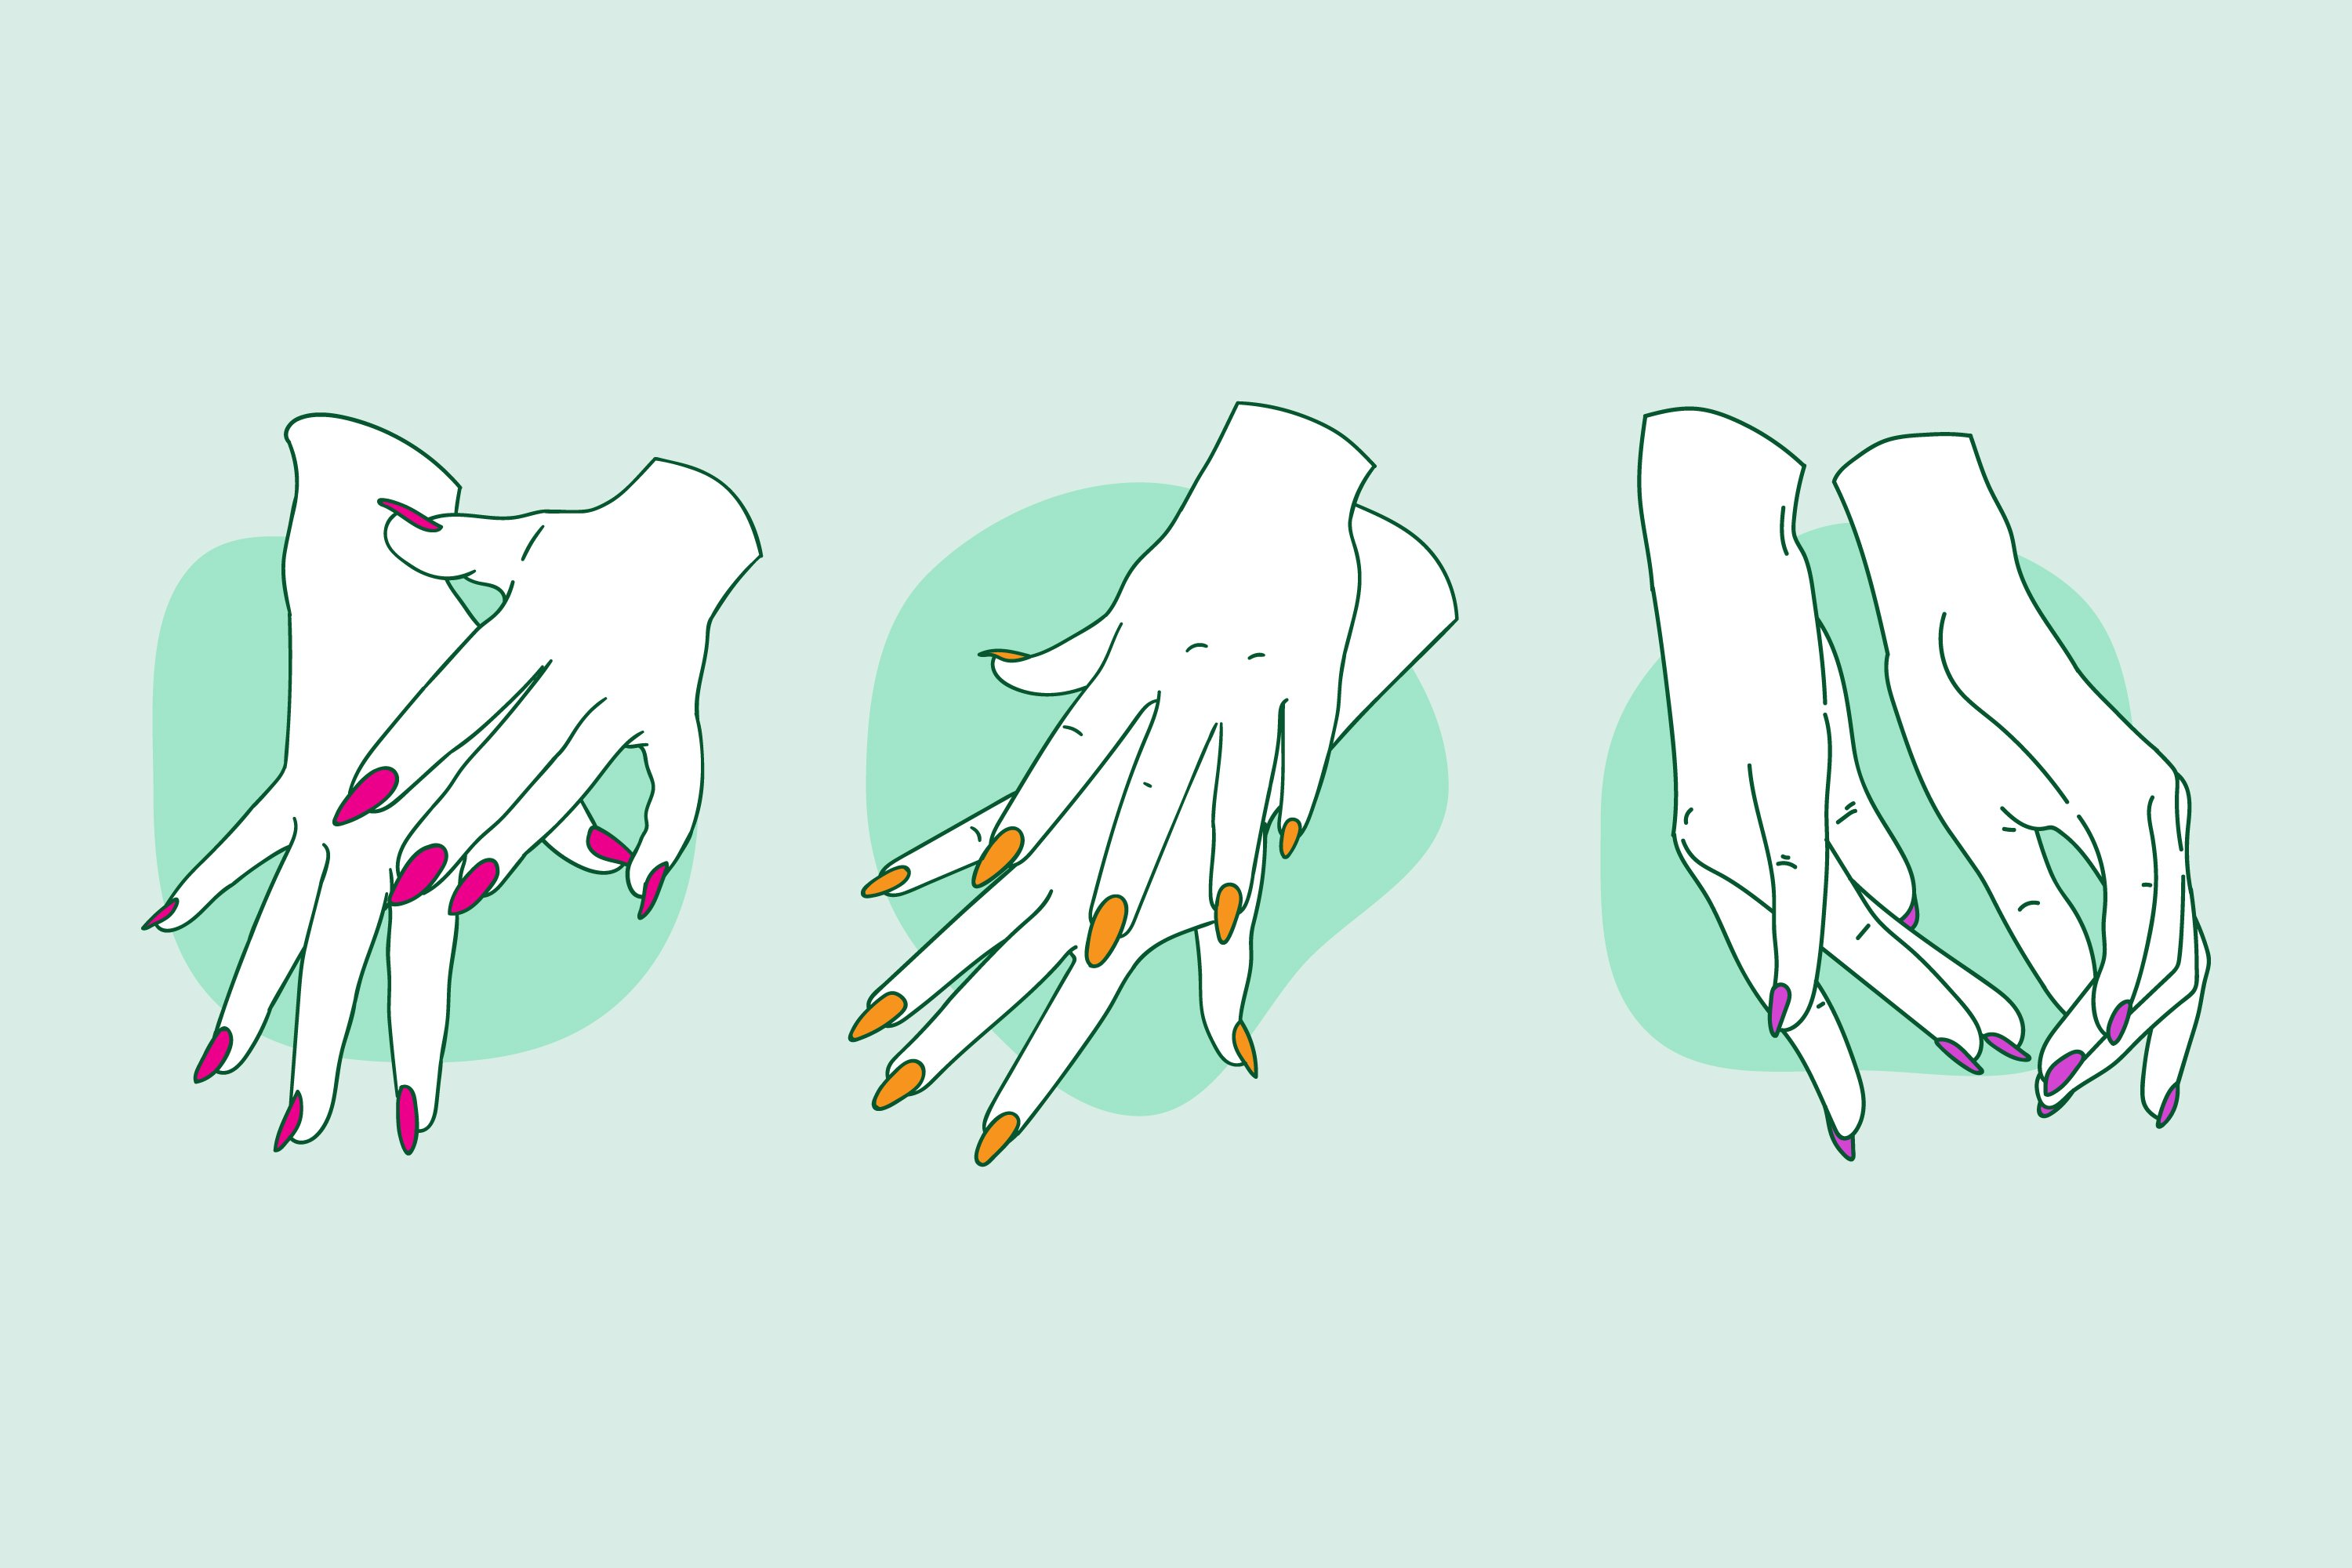 Collection of Drawn Manicure Hand example image 1